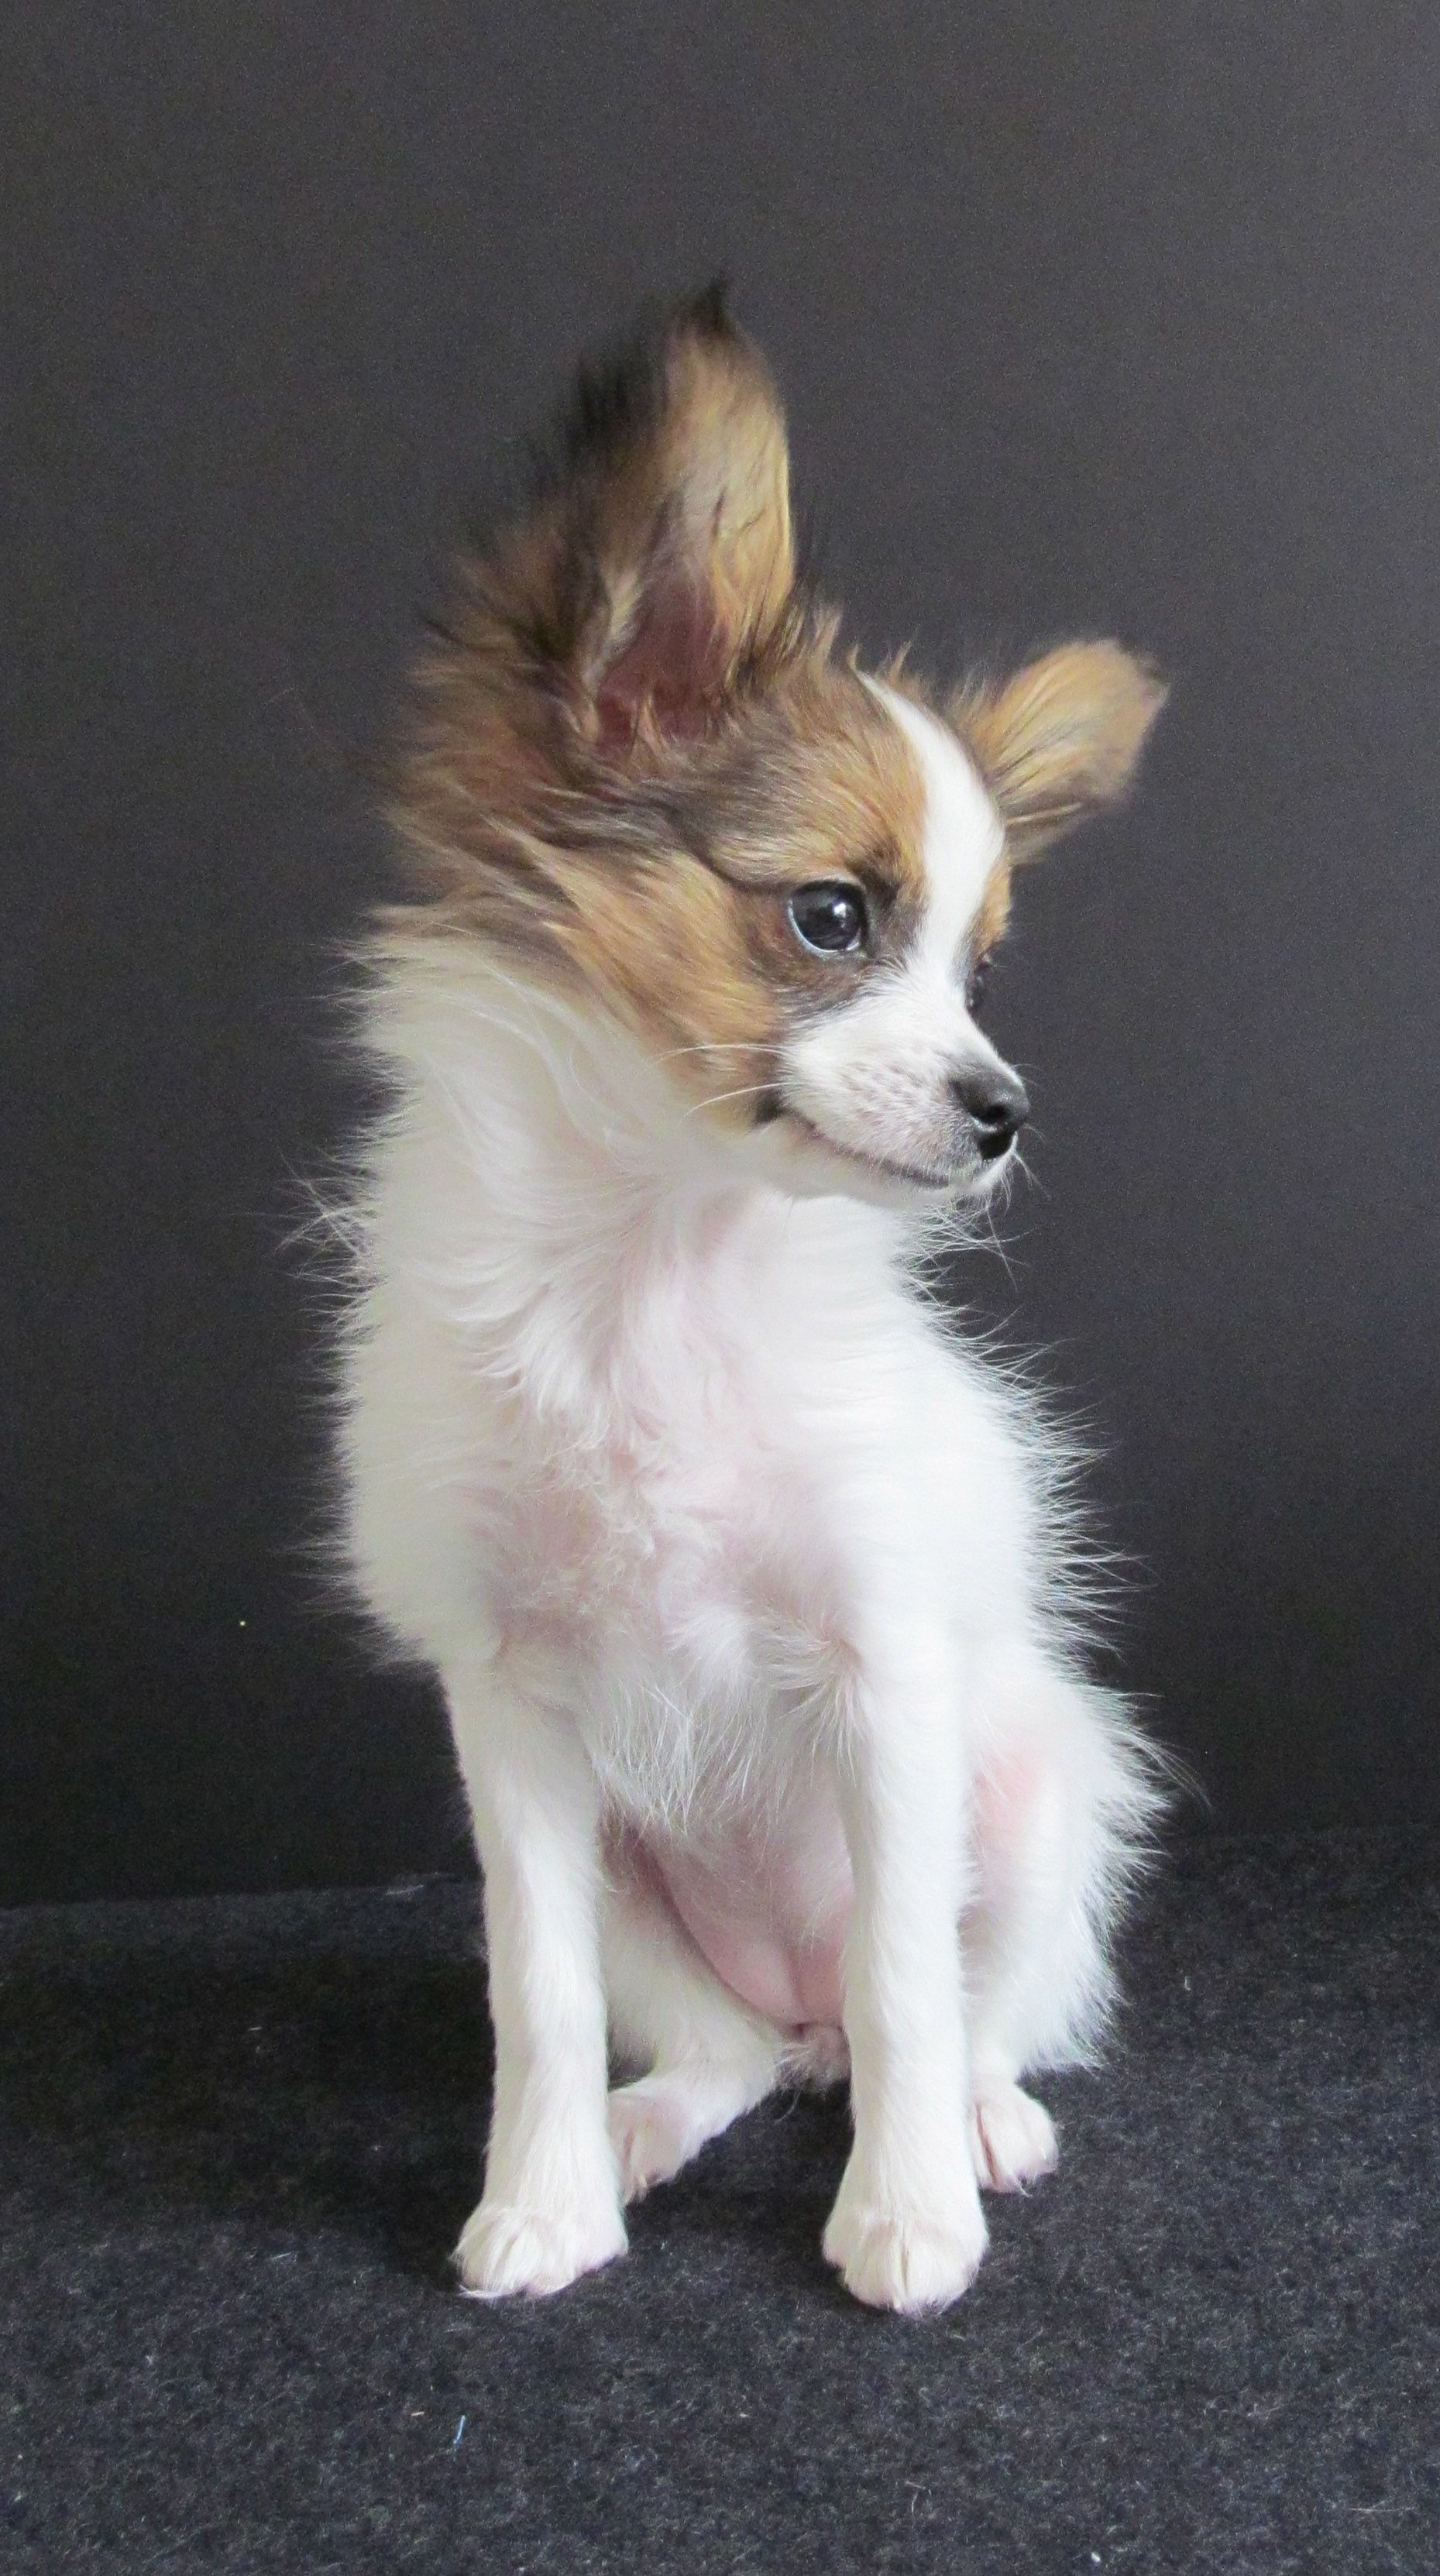 Little Sofie Is A Tiny Papillon Puppy 3 Pounds At 3 Months Old Papillon Puppy Papillon Dog Papillon Dog Puppy